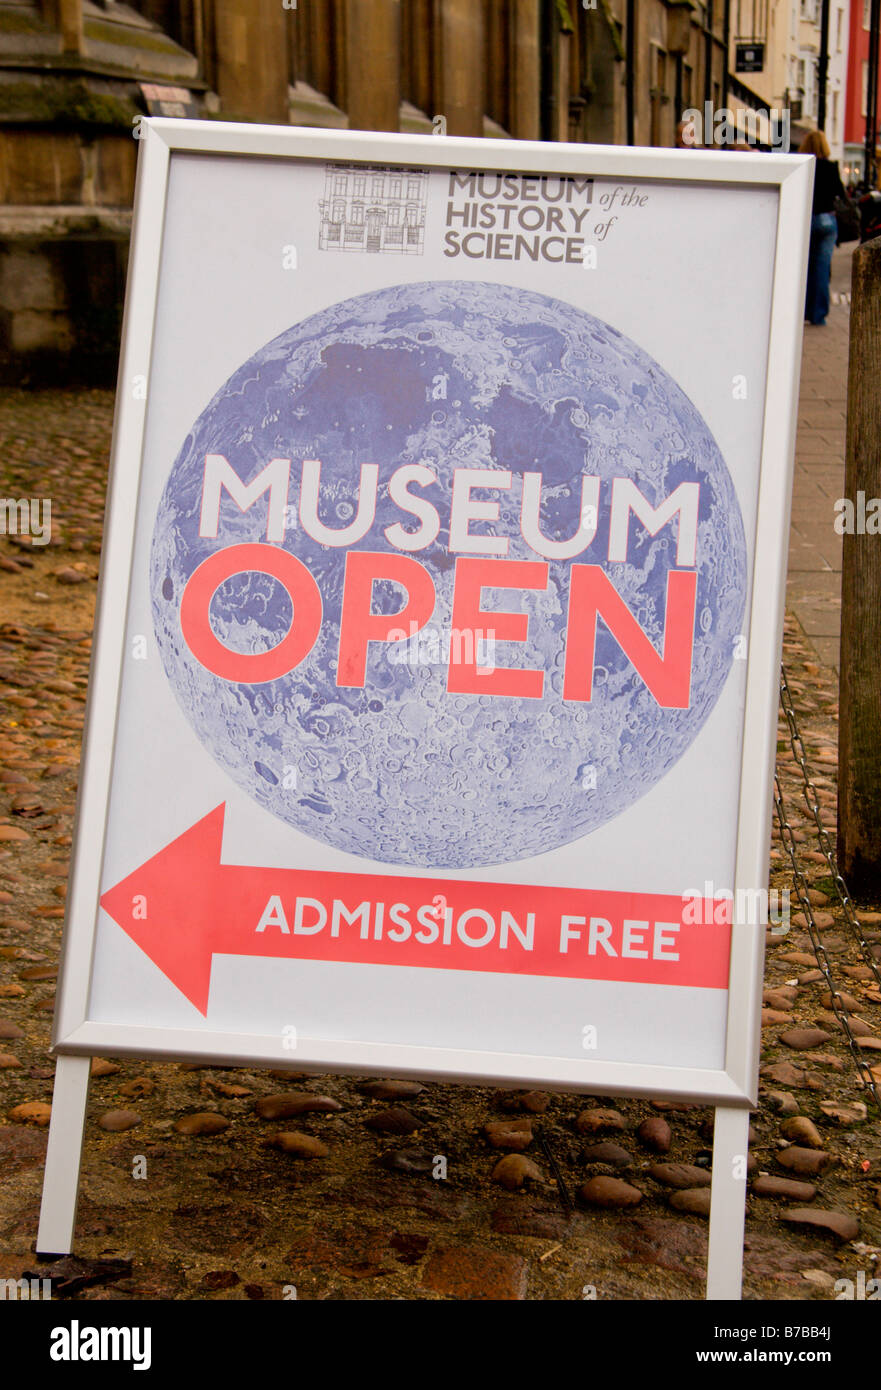 Sign outside the Museum of the History of Science, Broad Street, Oxford, England. Jan 2009 - Stock Image